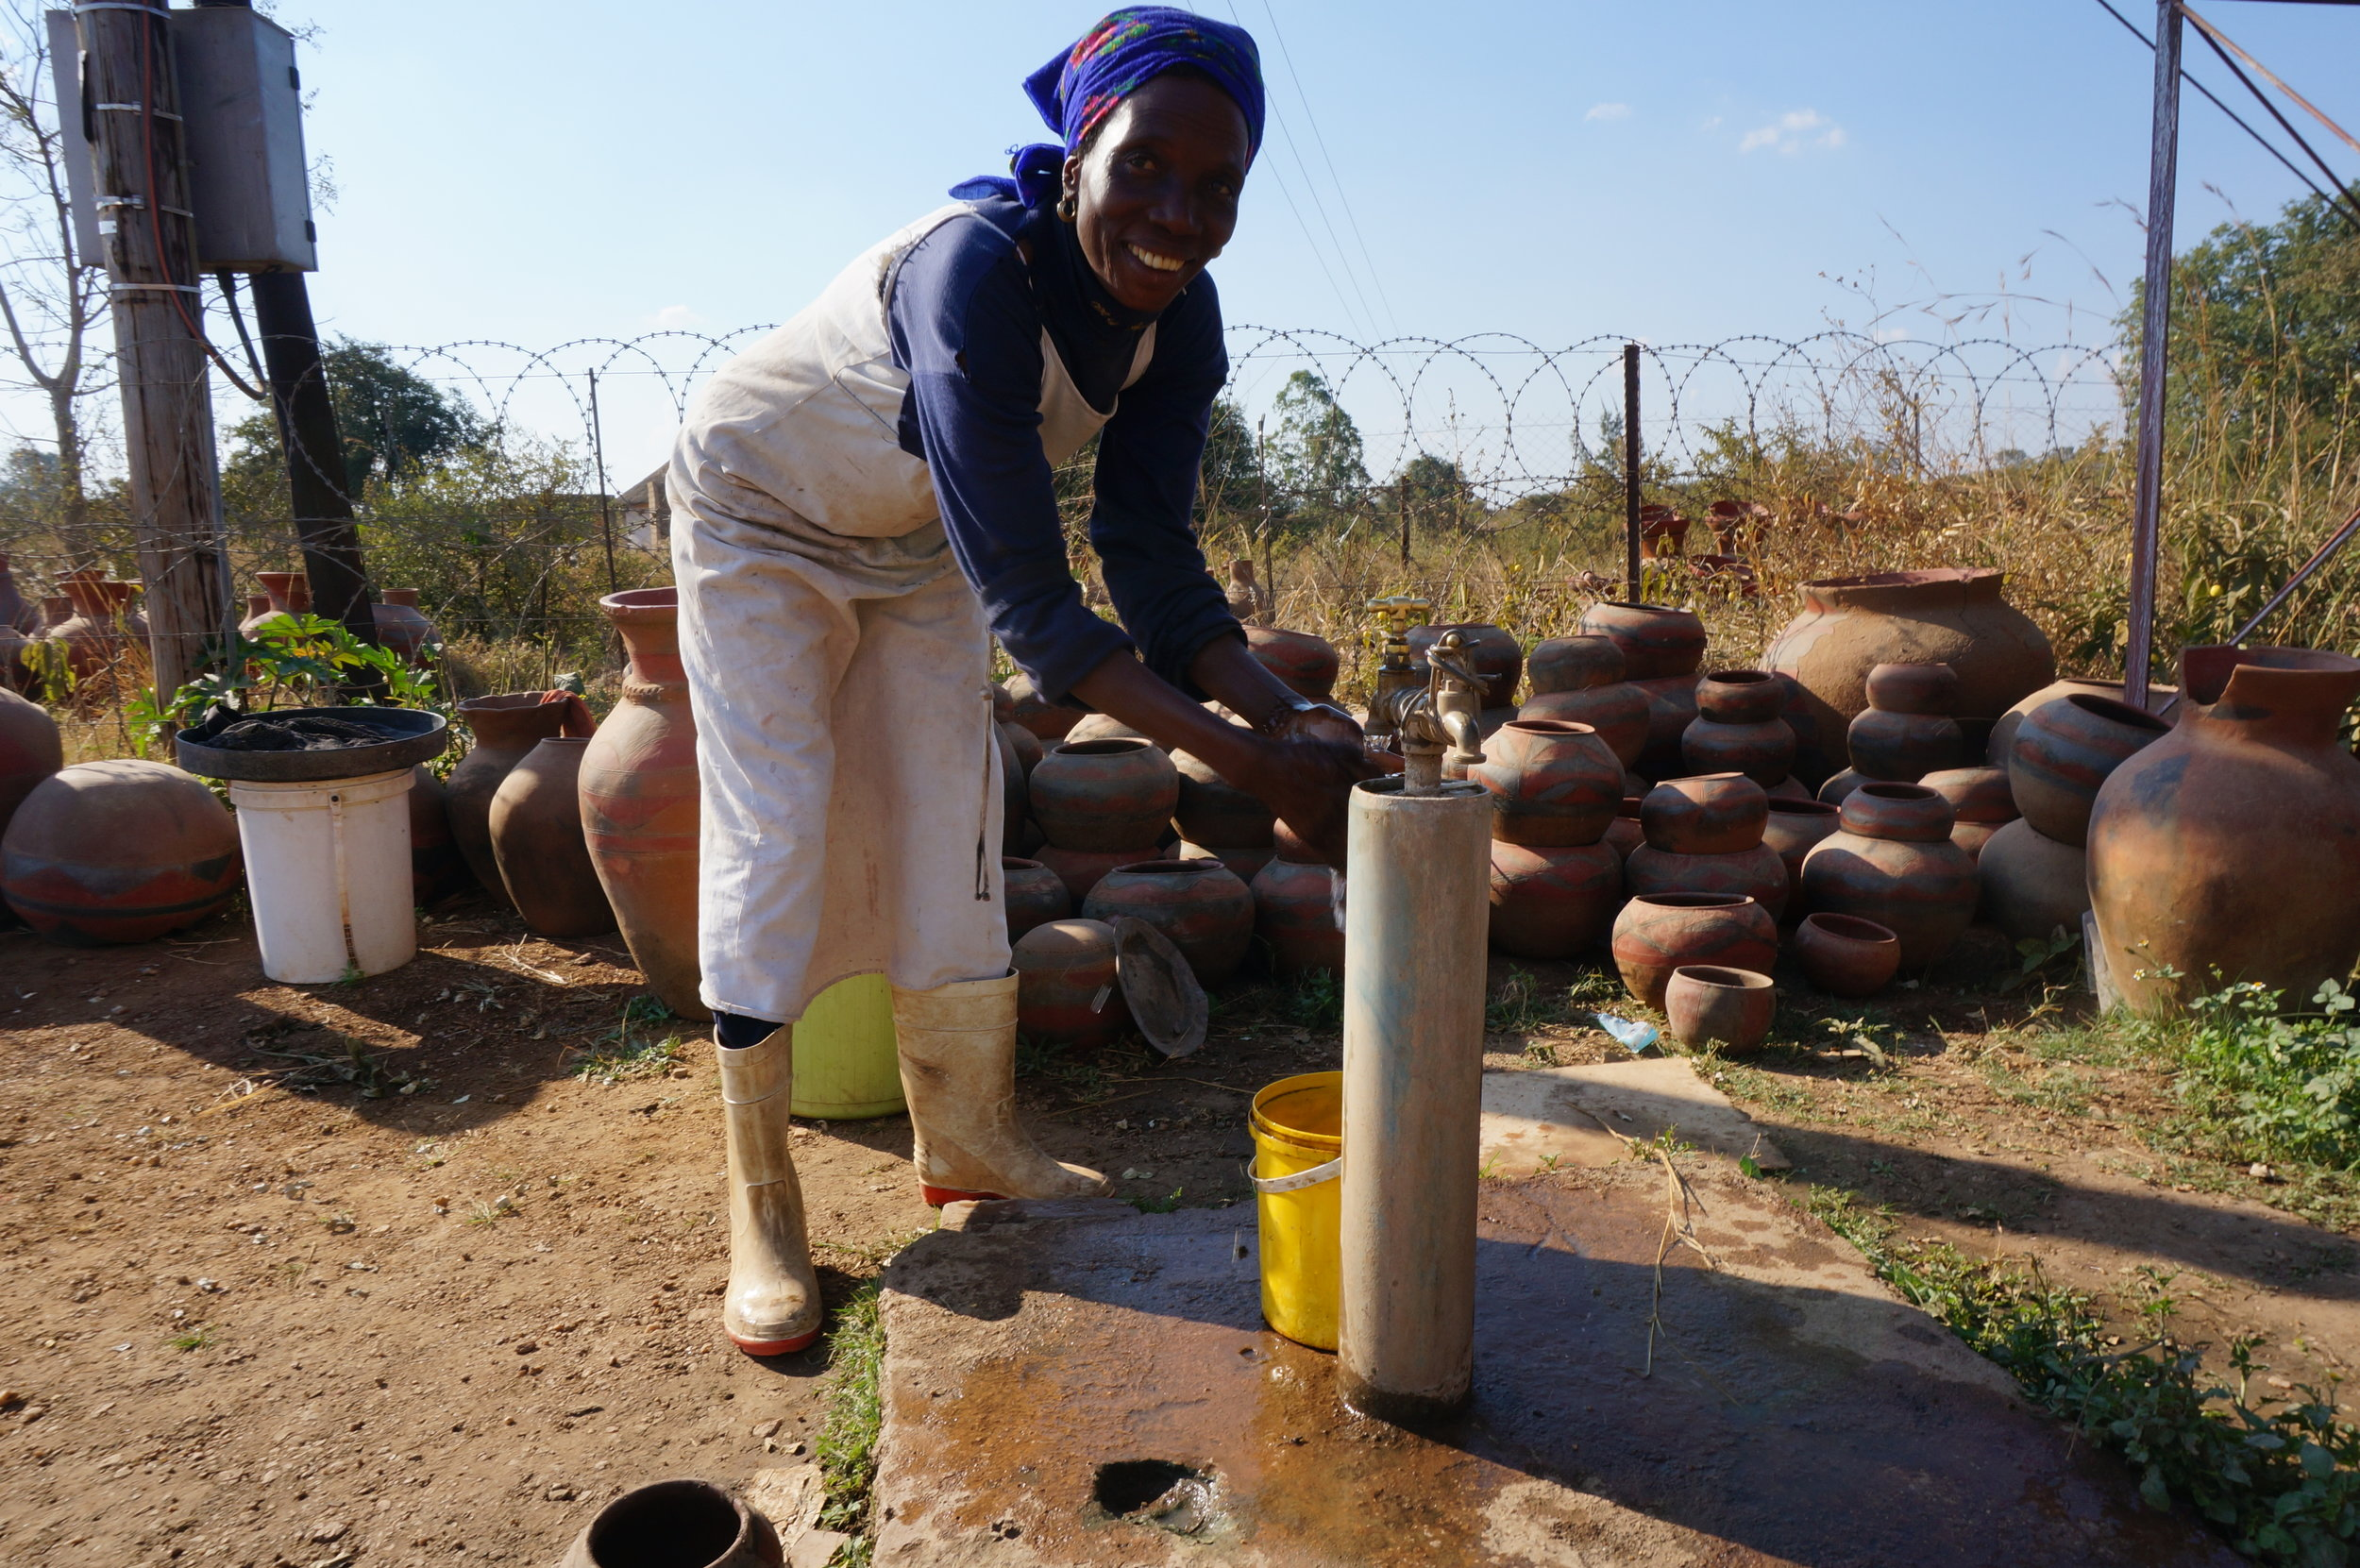 The Vision - At PureMadi we believe that safe drinking water should be accessible everywhere; as a result, our products will be sold and priced in a manner that balances costs and profitability with the economic circumstances of customers.